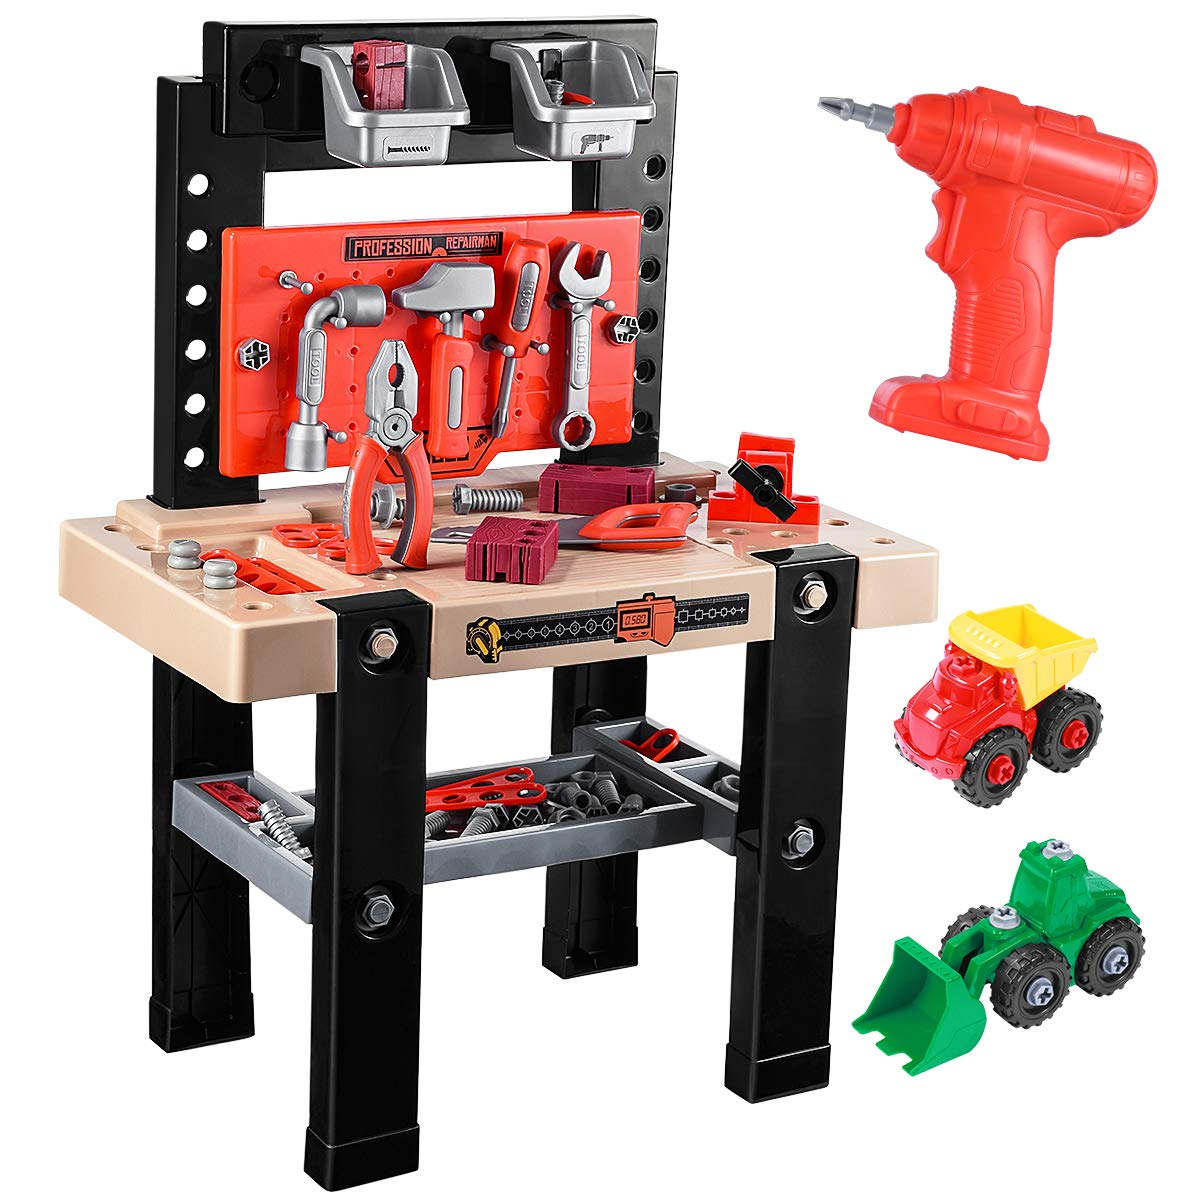 iBaseToy Toy Tool Bench, Kids Power Workbench, 91Piece Construction Toy Bench Set with Electric Drill, Educational Play & Pretend Play Workbench for Toddlers by iBaseToy